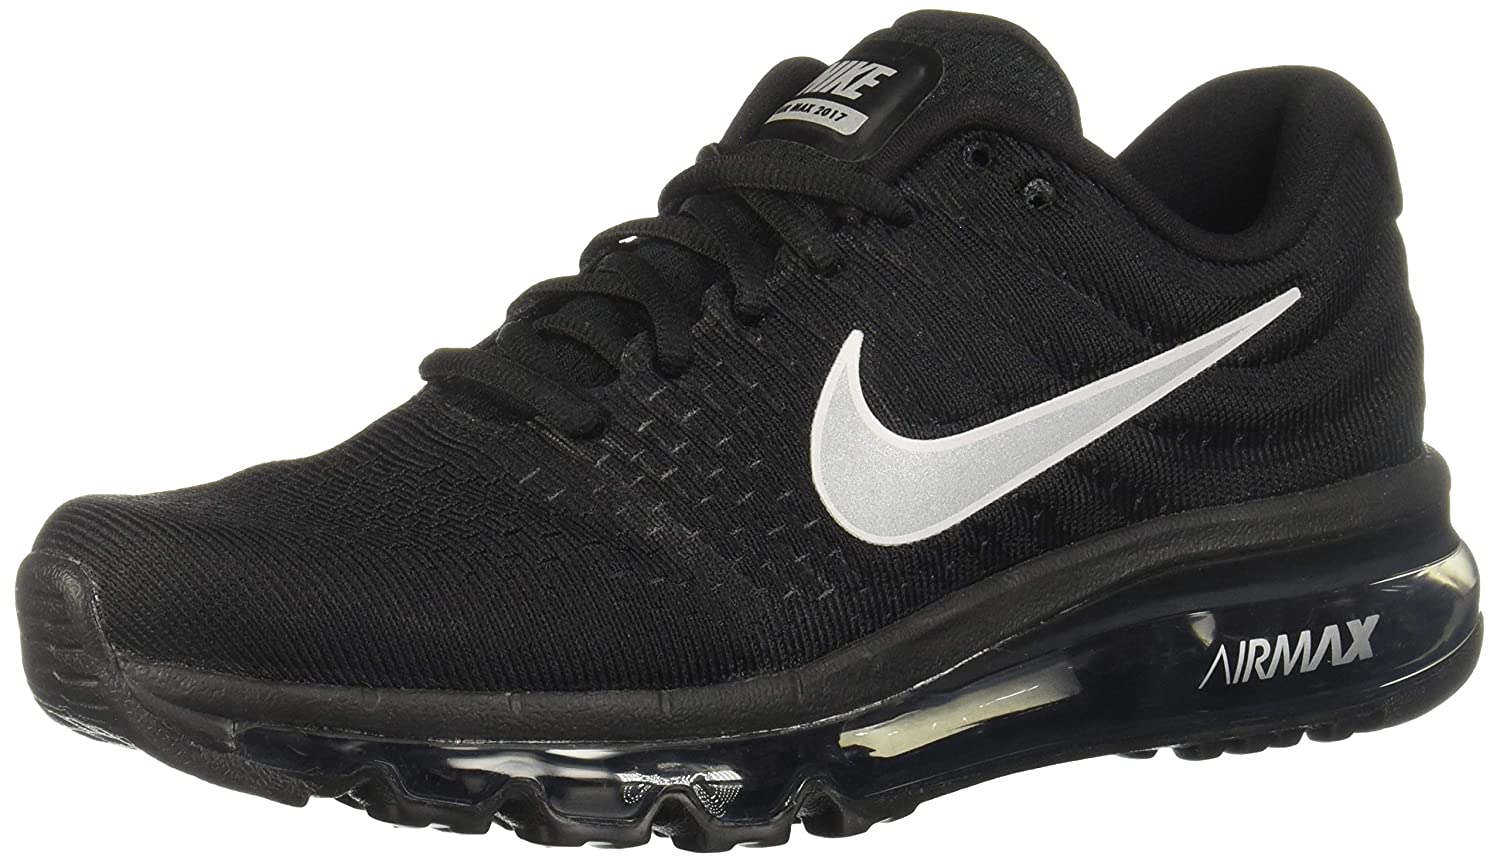 brand new 831c8 87880 Amazon.com | Nike Womens Air Max 2017 Running Shoes Black/White/Anthracite  849560-001 Size 10 | Road Running